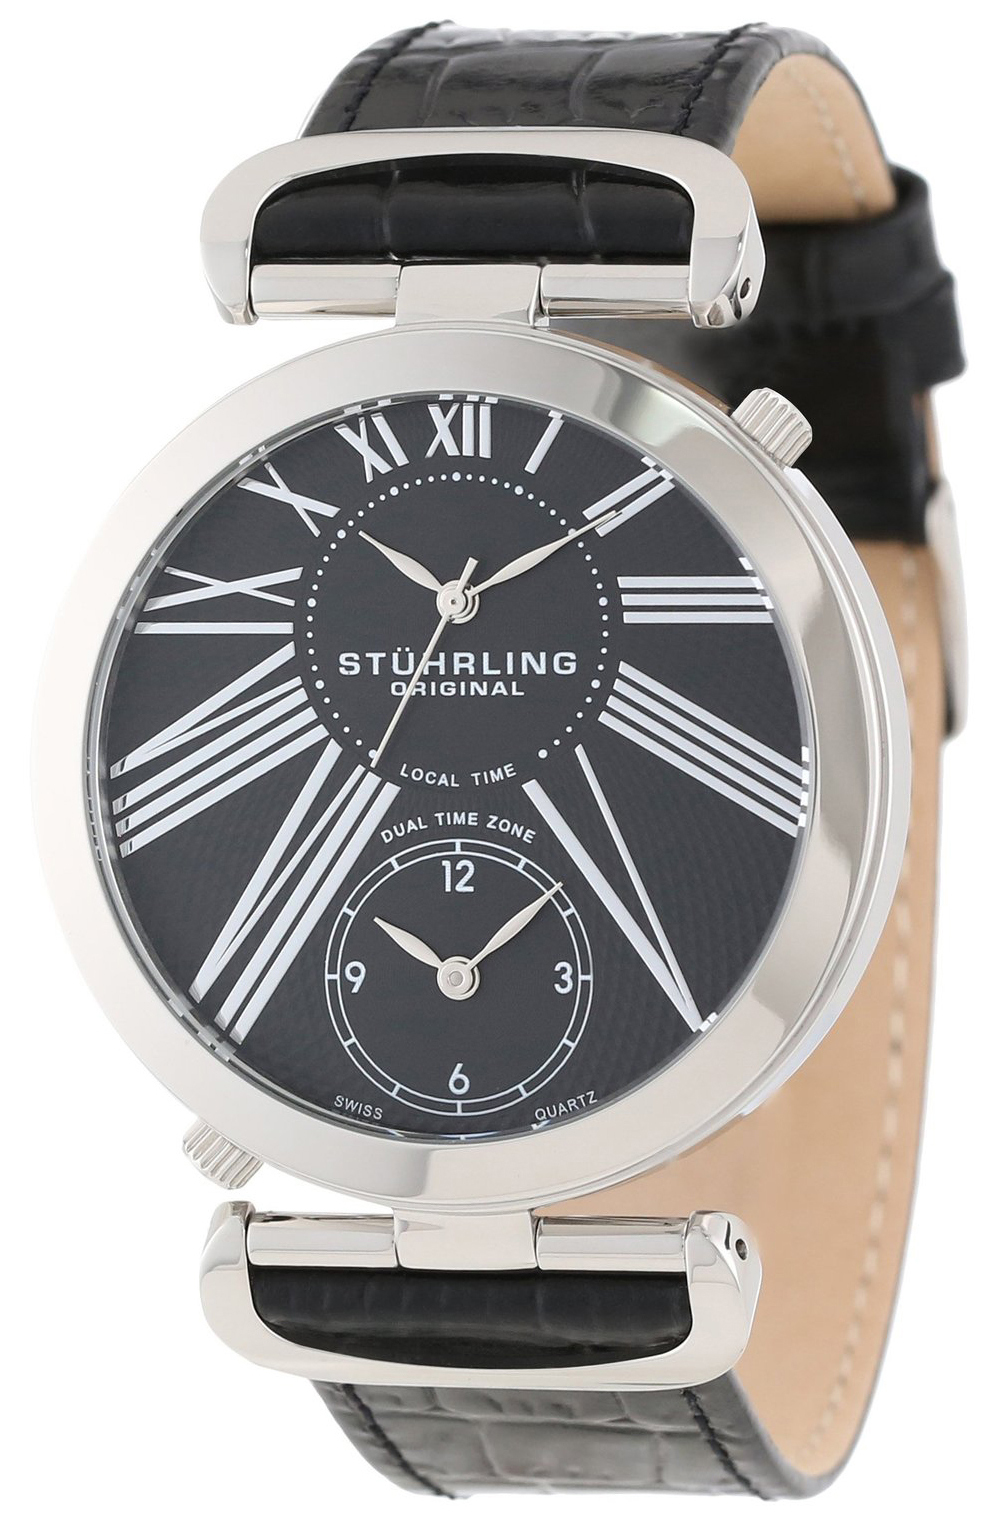 Stührling Original Herreklokke 377.33151 Sort/Lær Ø43 mm - Stührling Original